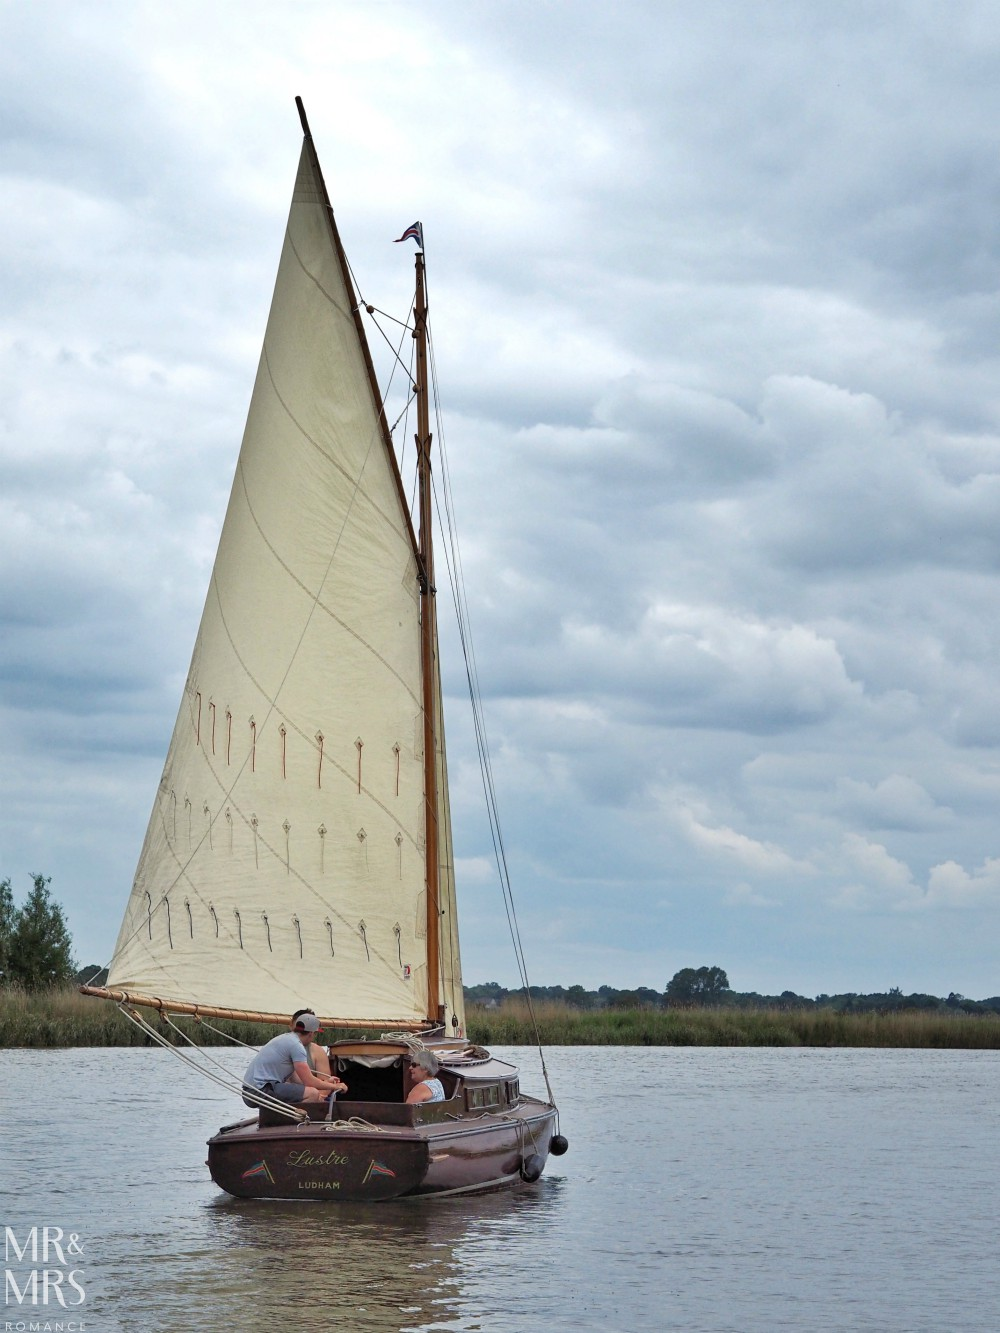 Boating holidays England - Norfolk Broads boat hire. Sailing boat